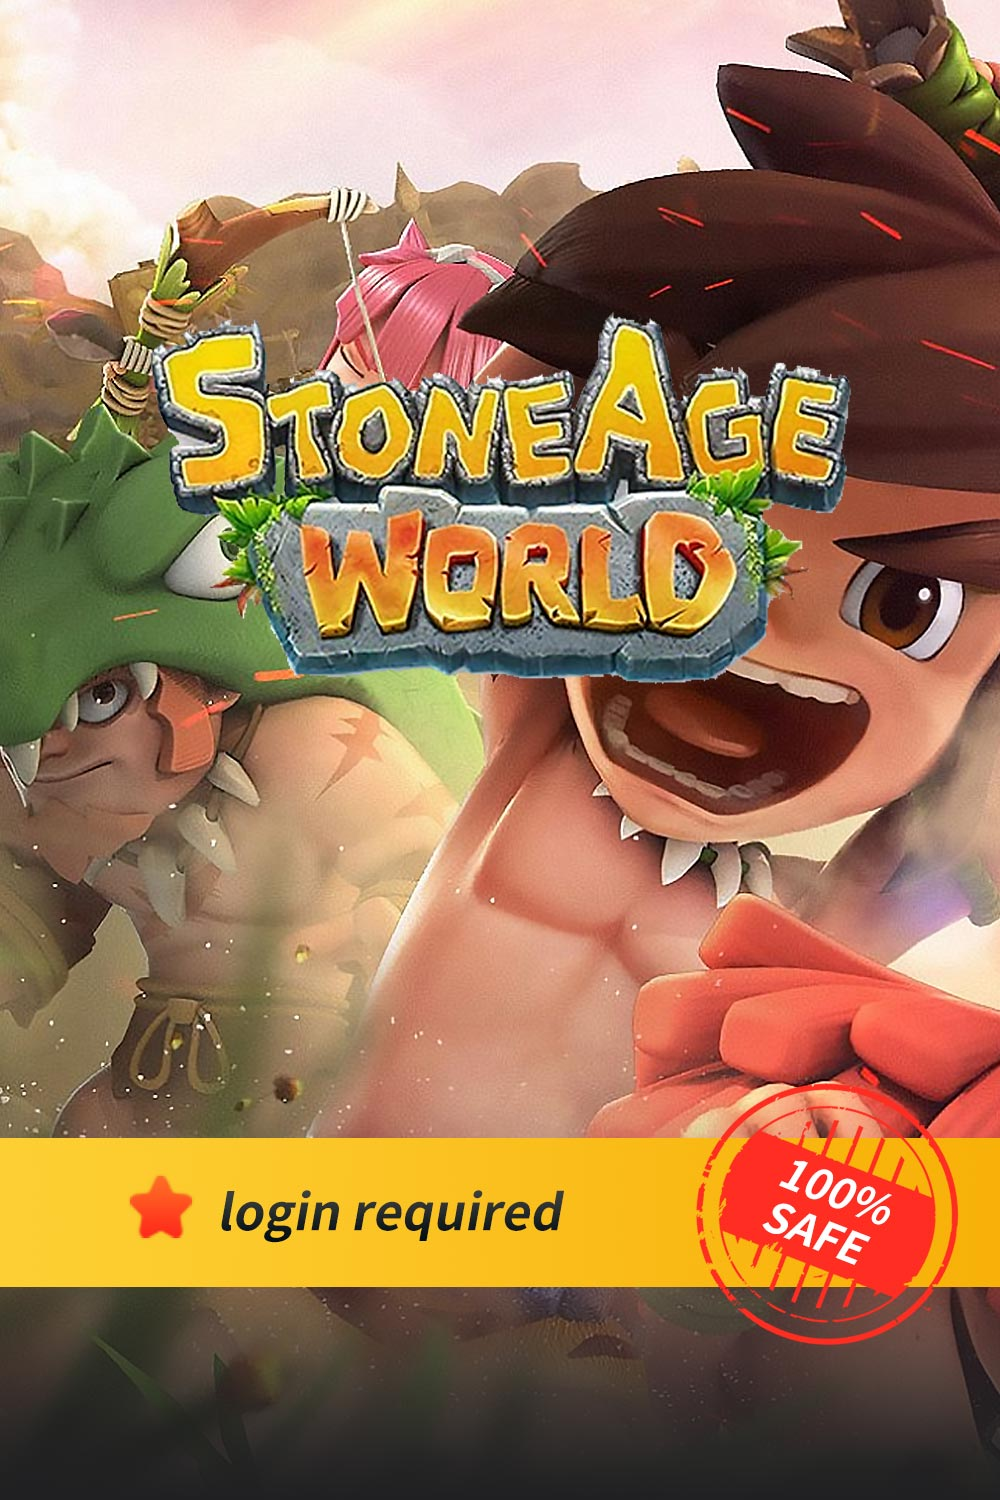 Stoneage:World